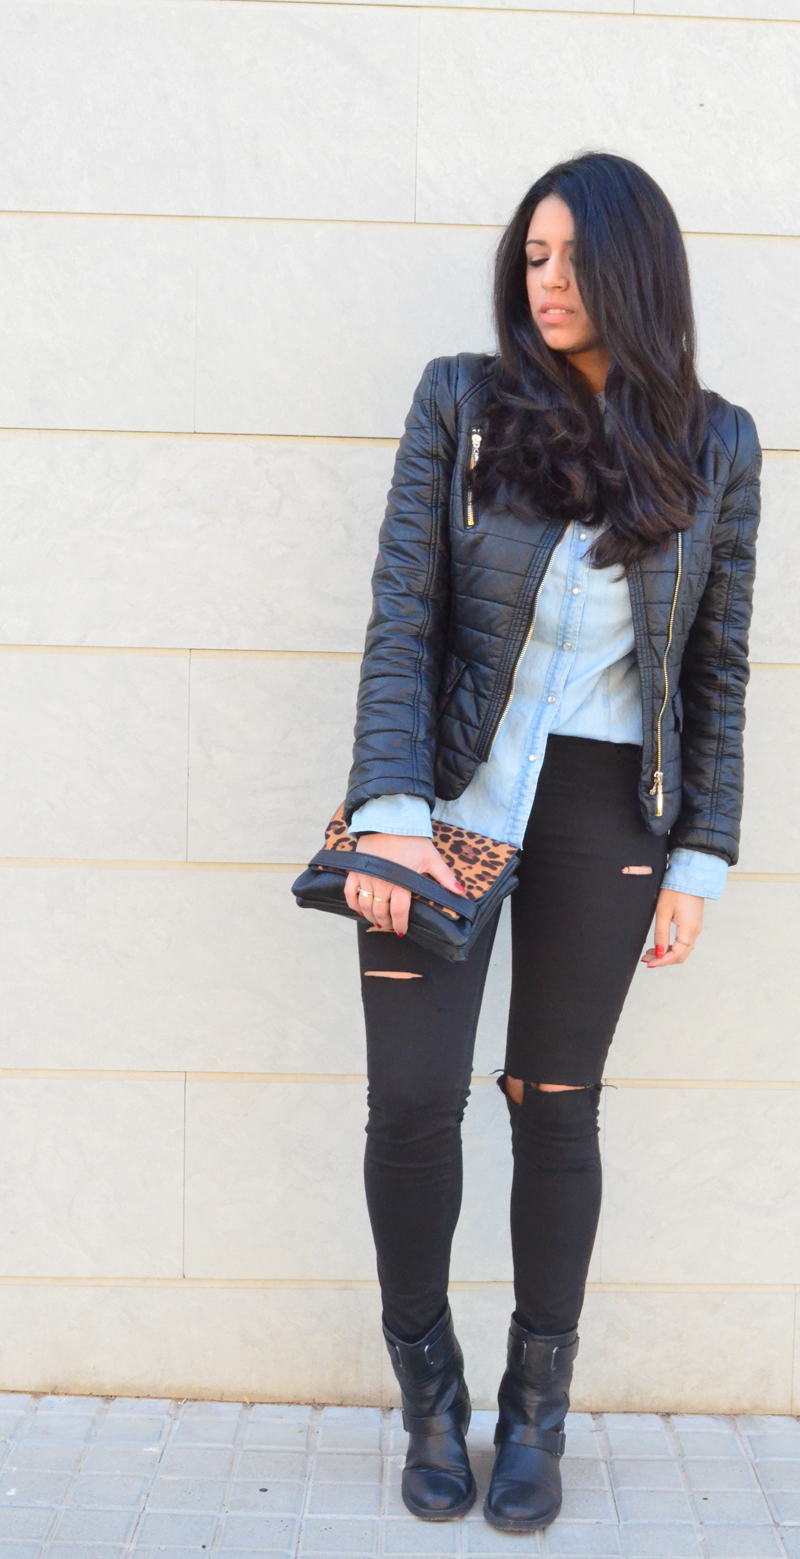 florenciablog look rocker broken jeans inspiration leopard clutch stradivarius how to wear broken jeans